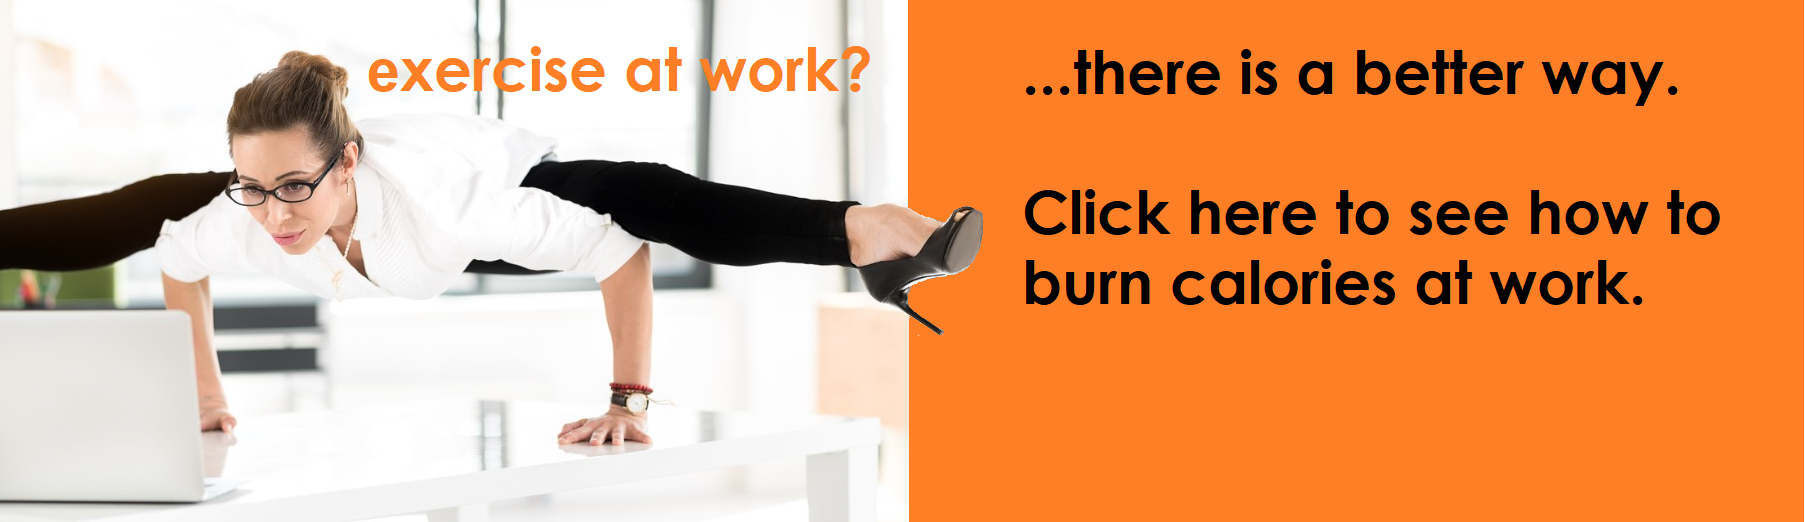 exercise at work burn calories working